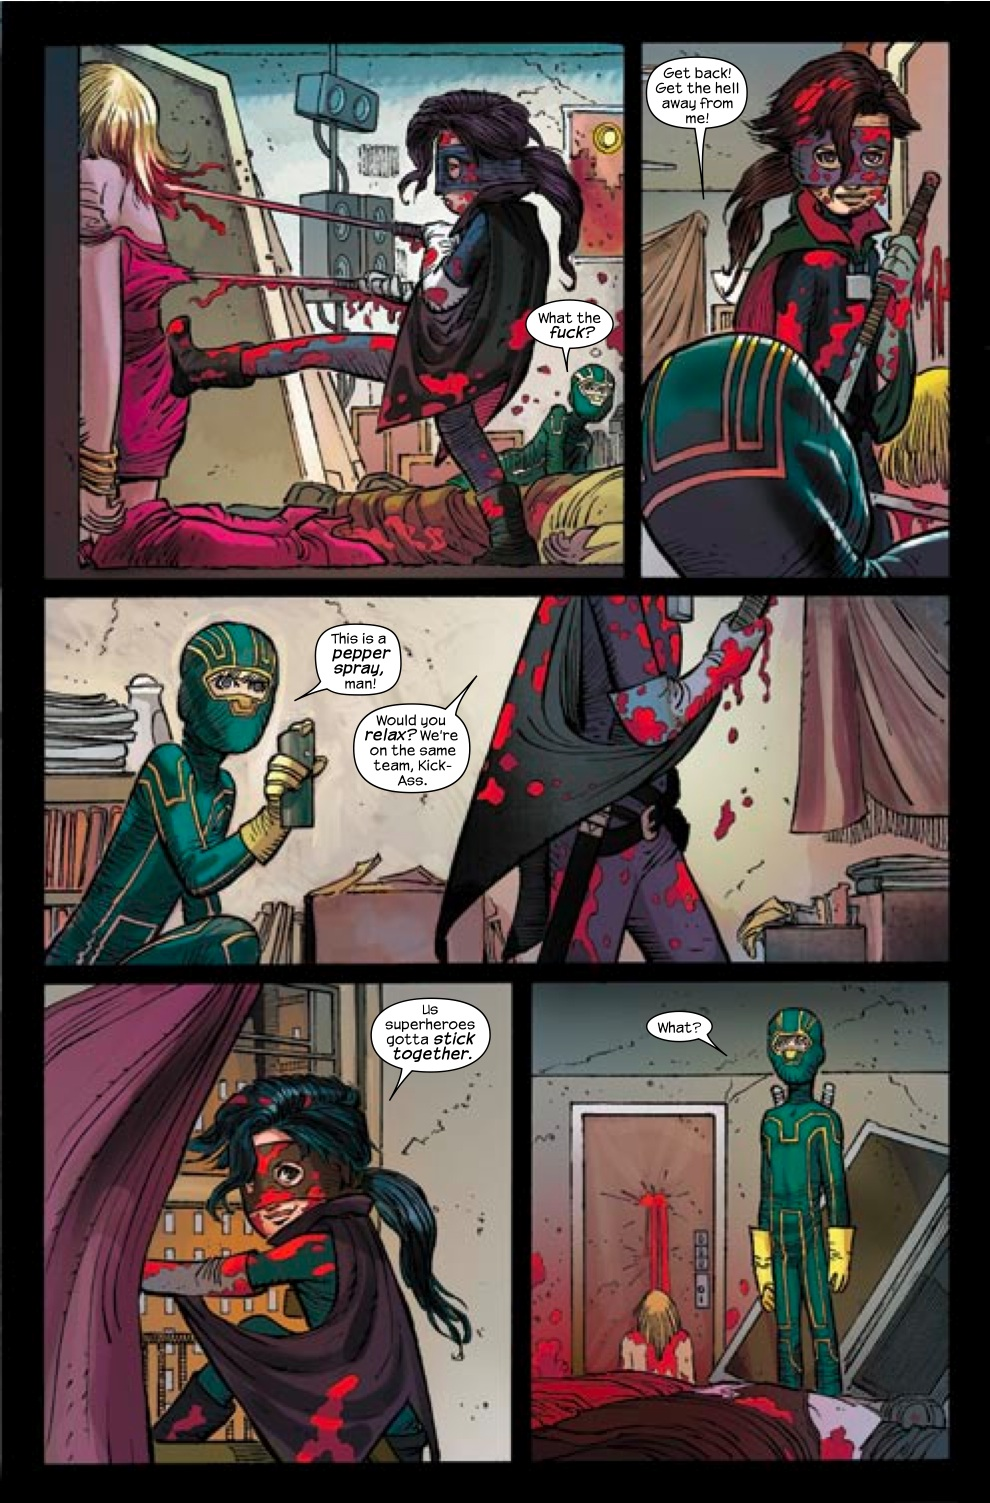 Kick-Ass and Hit Girl meet for the first time.